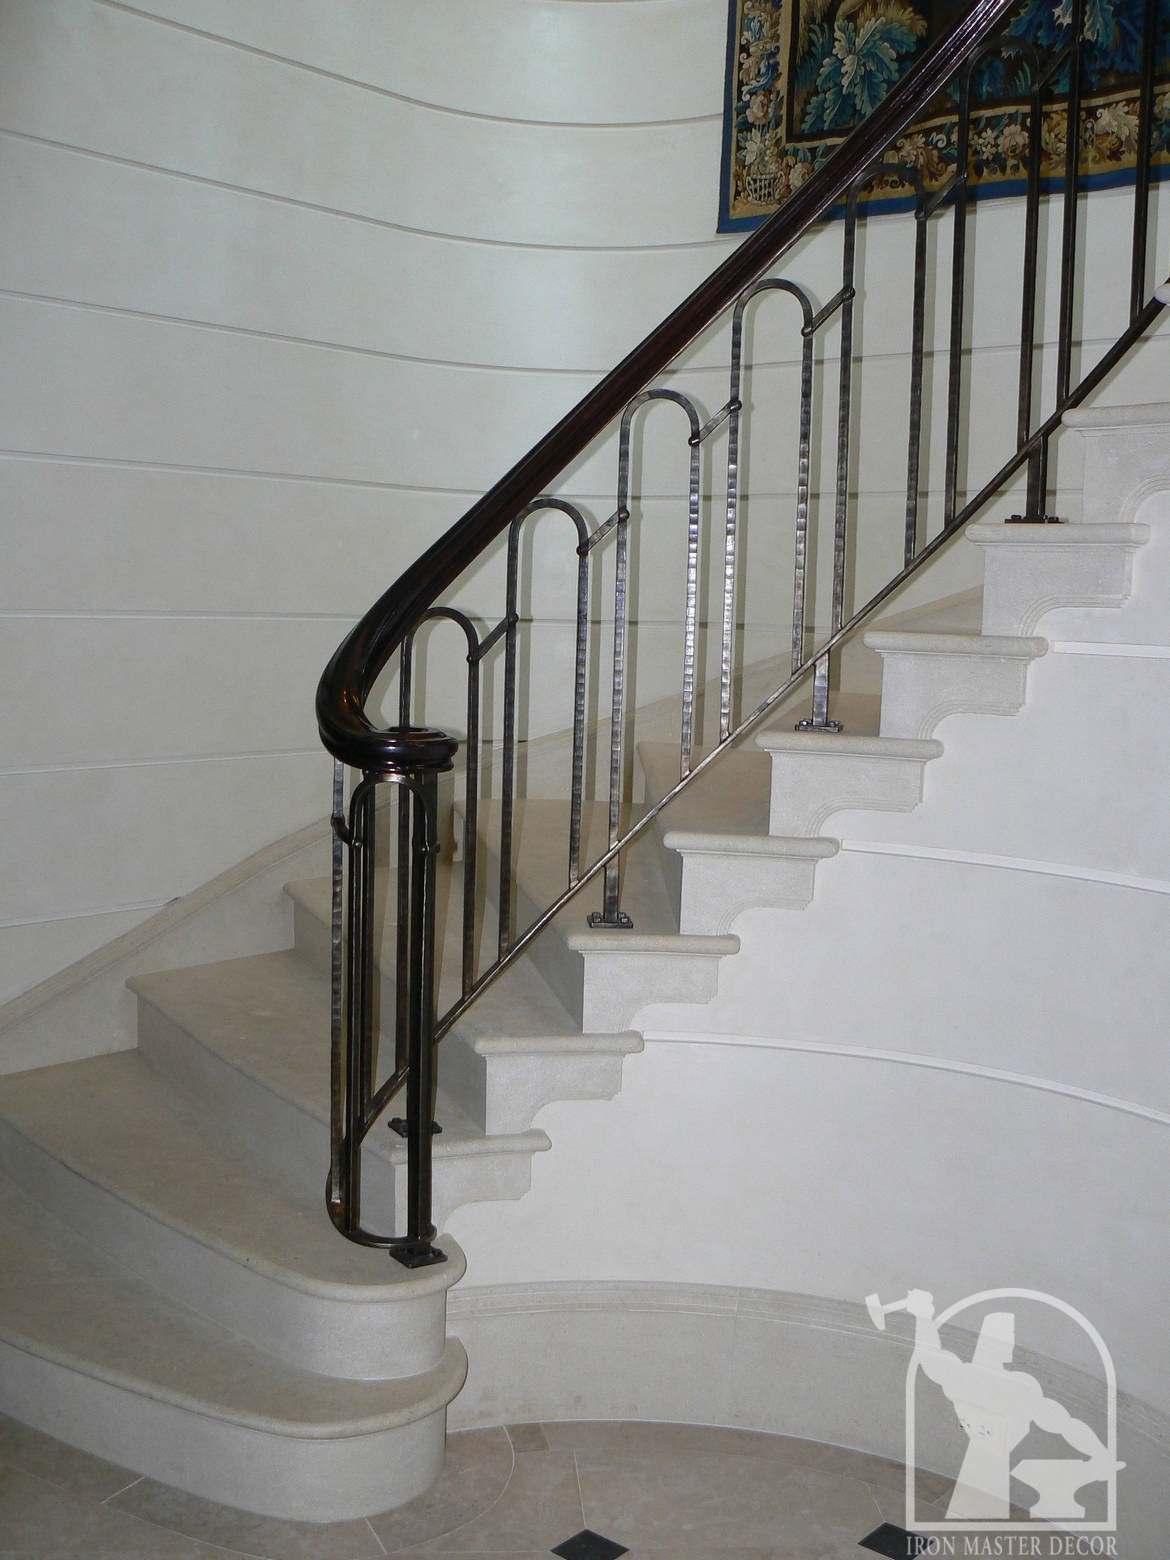 Wrought iron interior railings photo gallery iron master for Interior iron railing designs